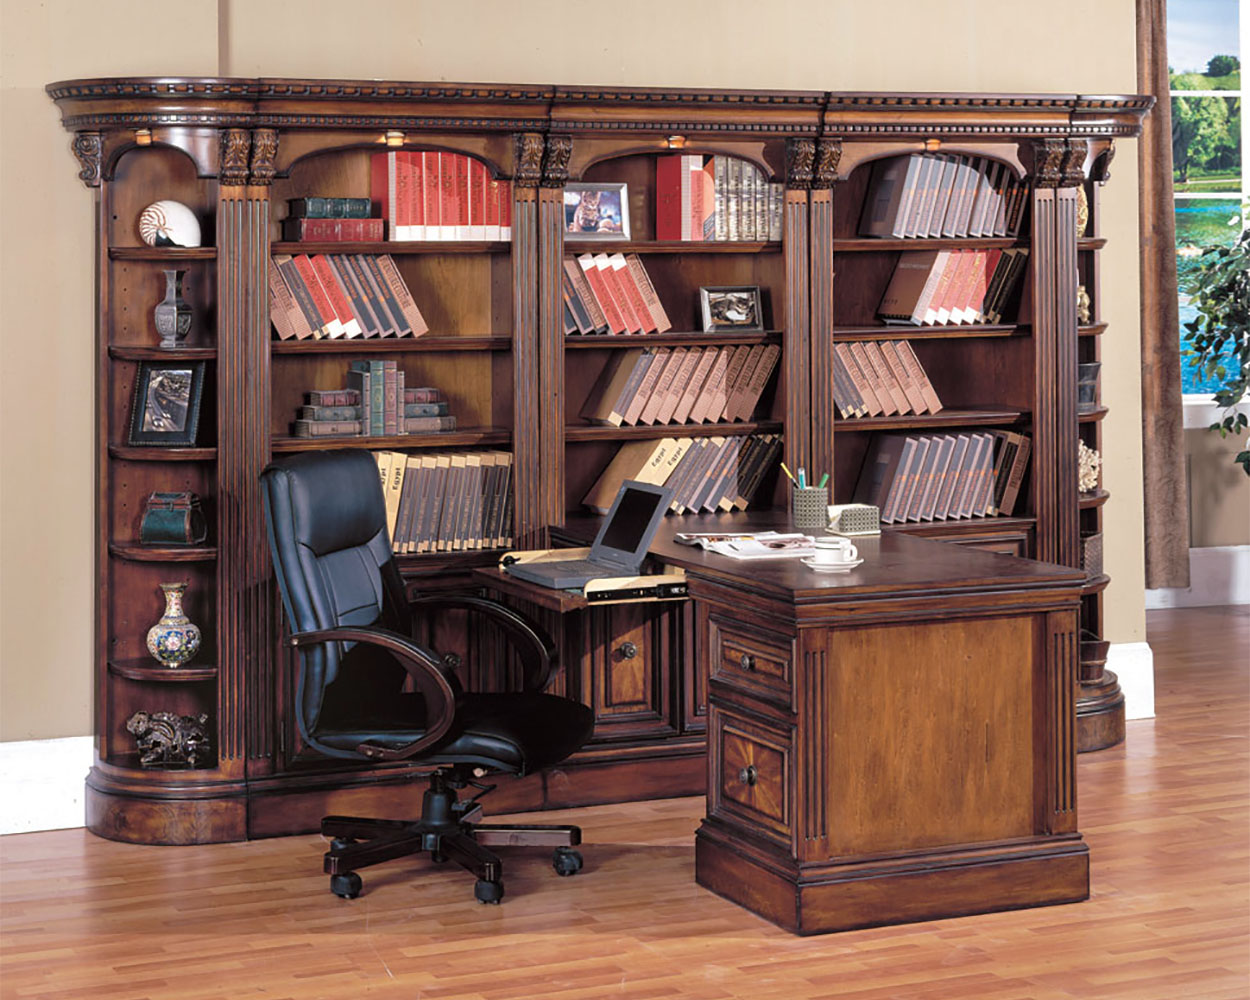 Huntington Home Products Parker House Huntington Home Office Furniture Ph Hun 2